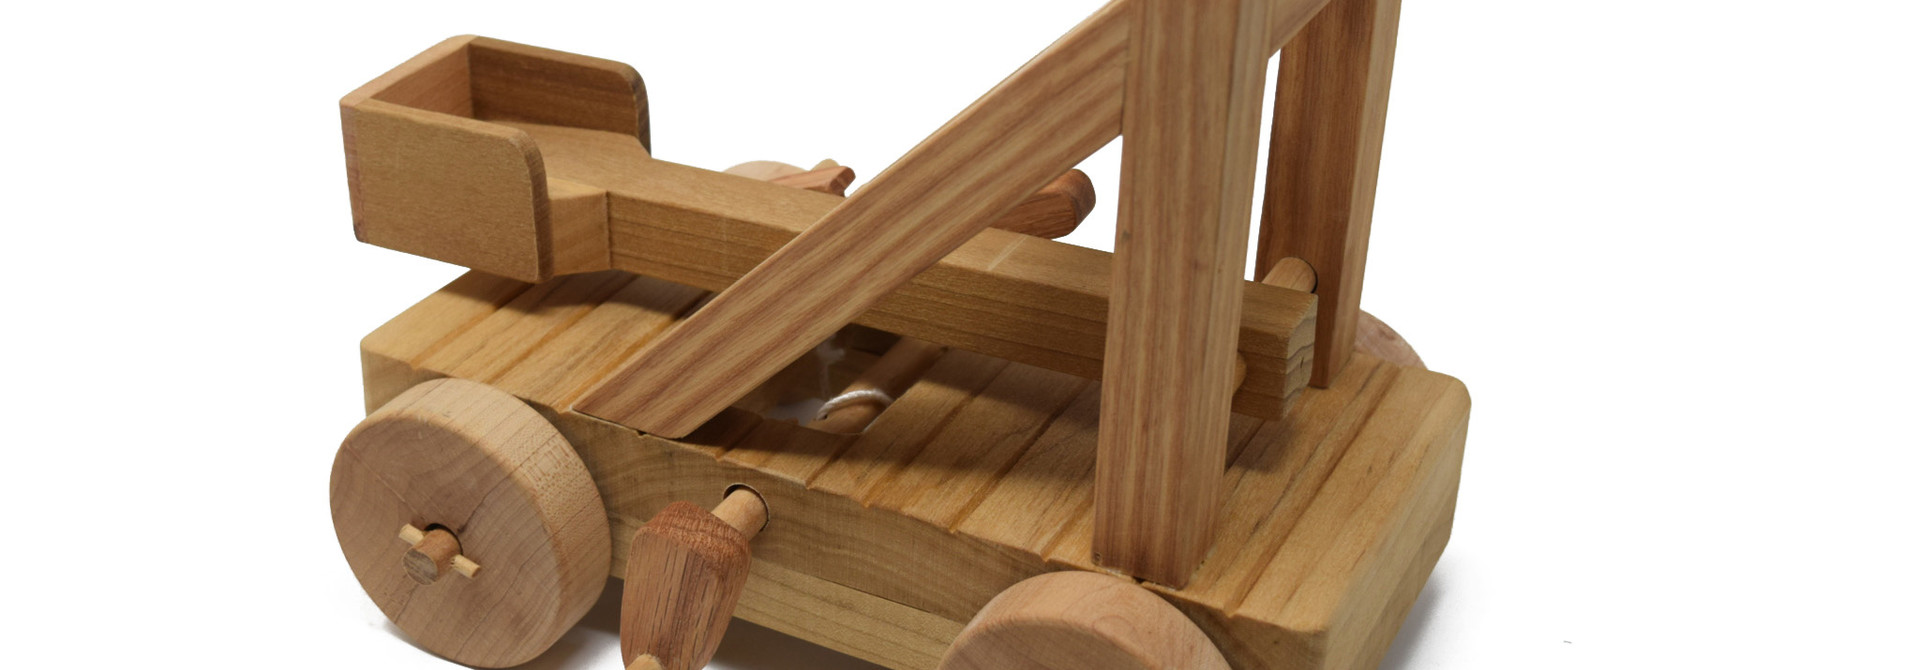 Wooden Catapult Toy